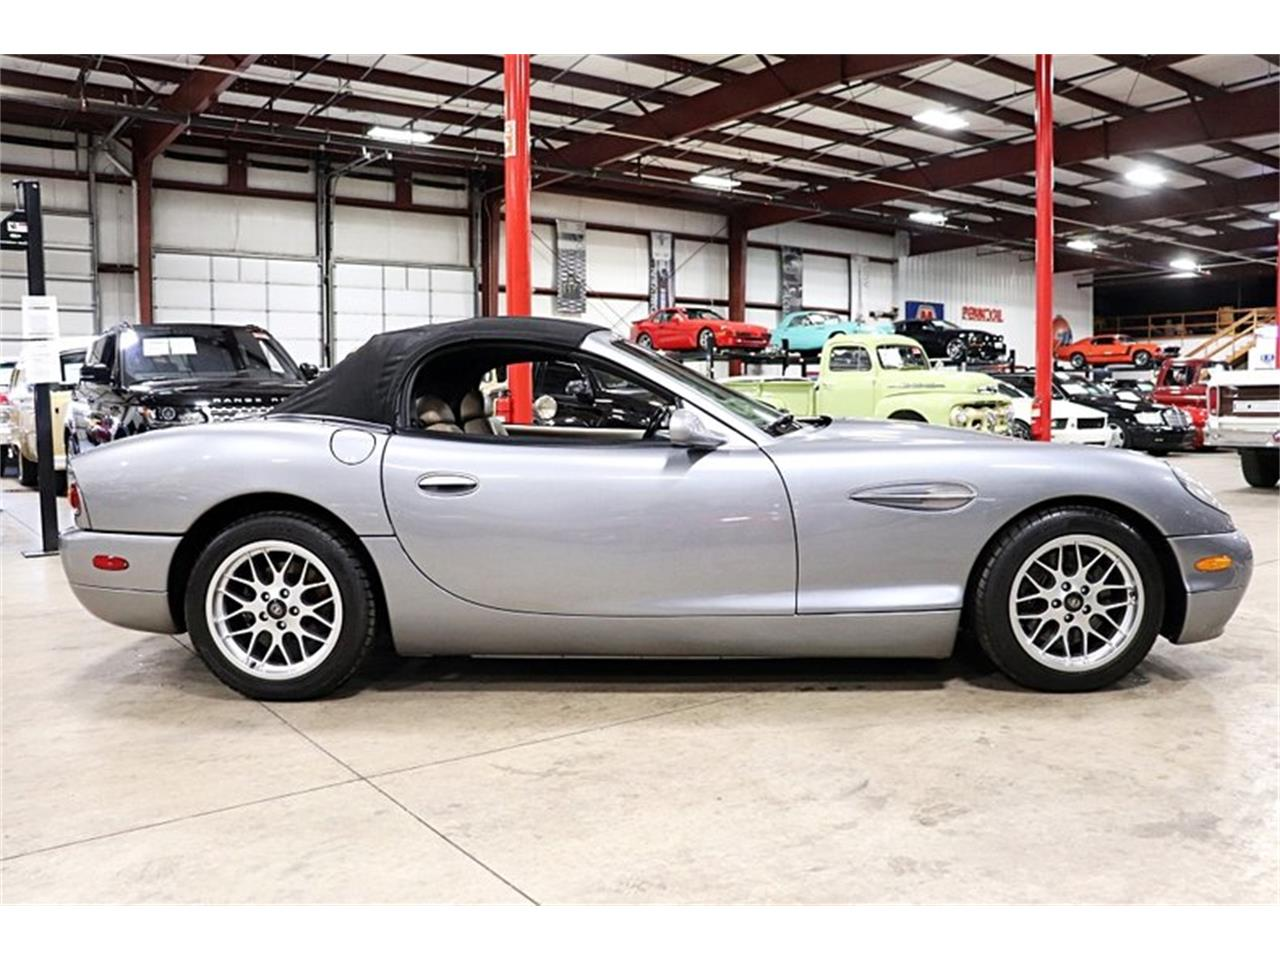 2001 Panoz Esperante for sale in Kentwood, MI – photo 78